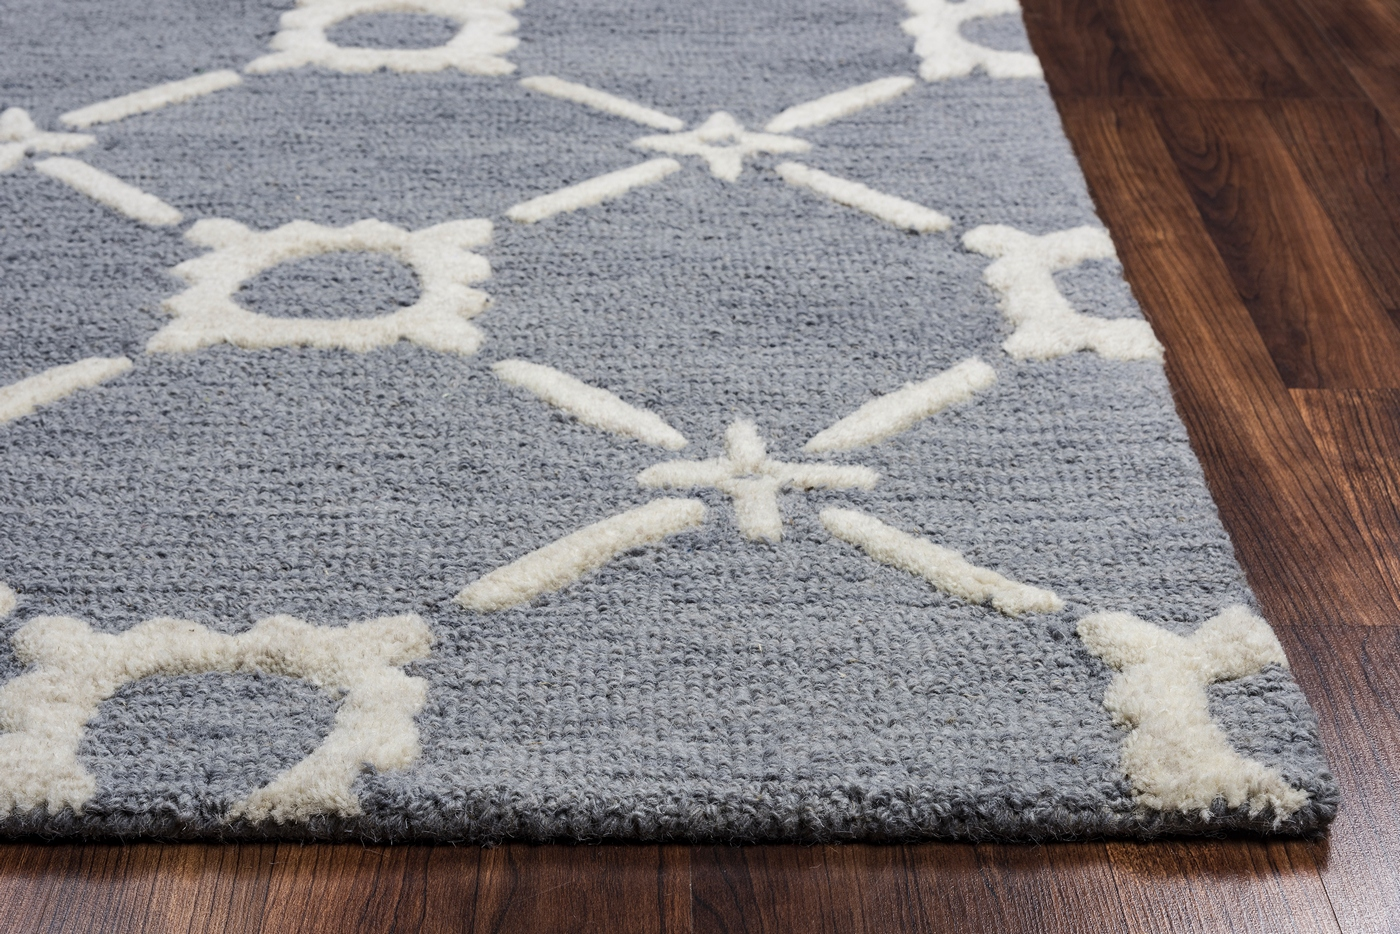 Luniccia Gears Pattern Wool Area Rug In Light Blue Amp Off